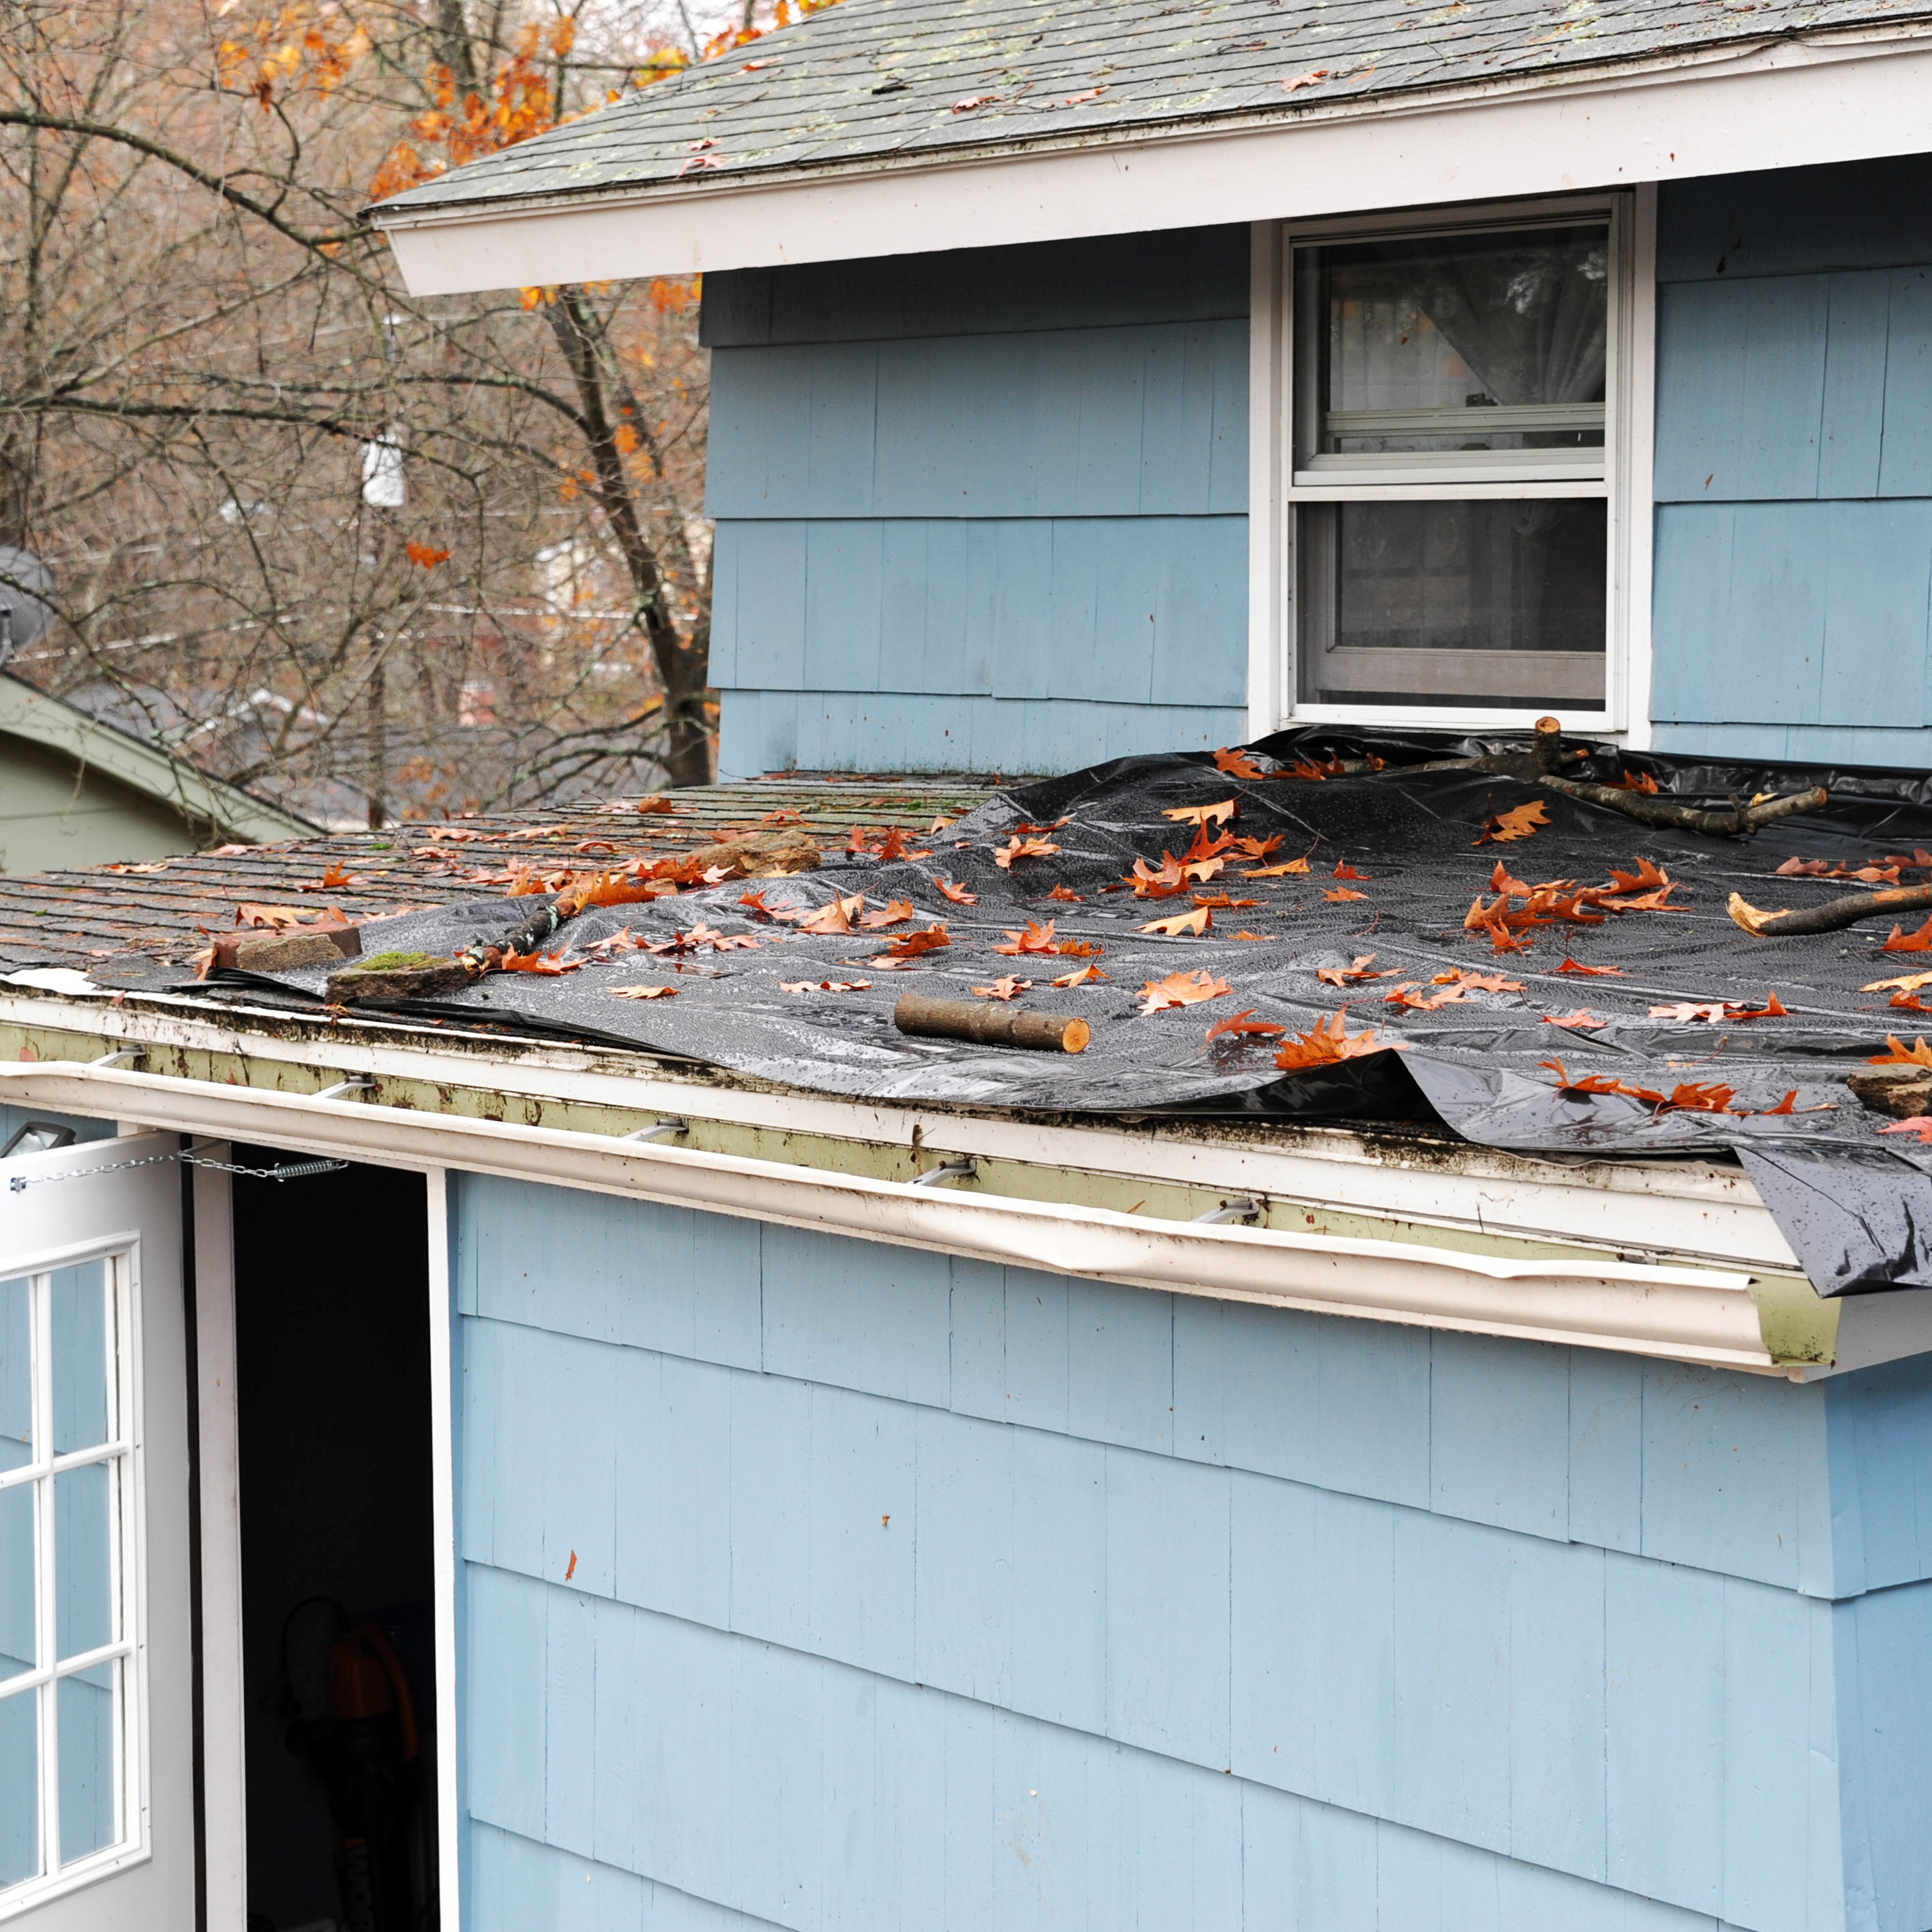 A roof with many of its shingles damaged.